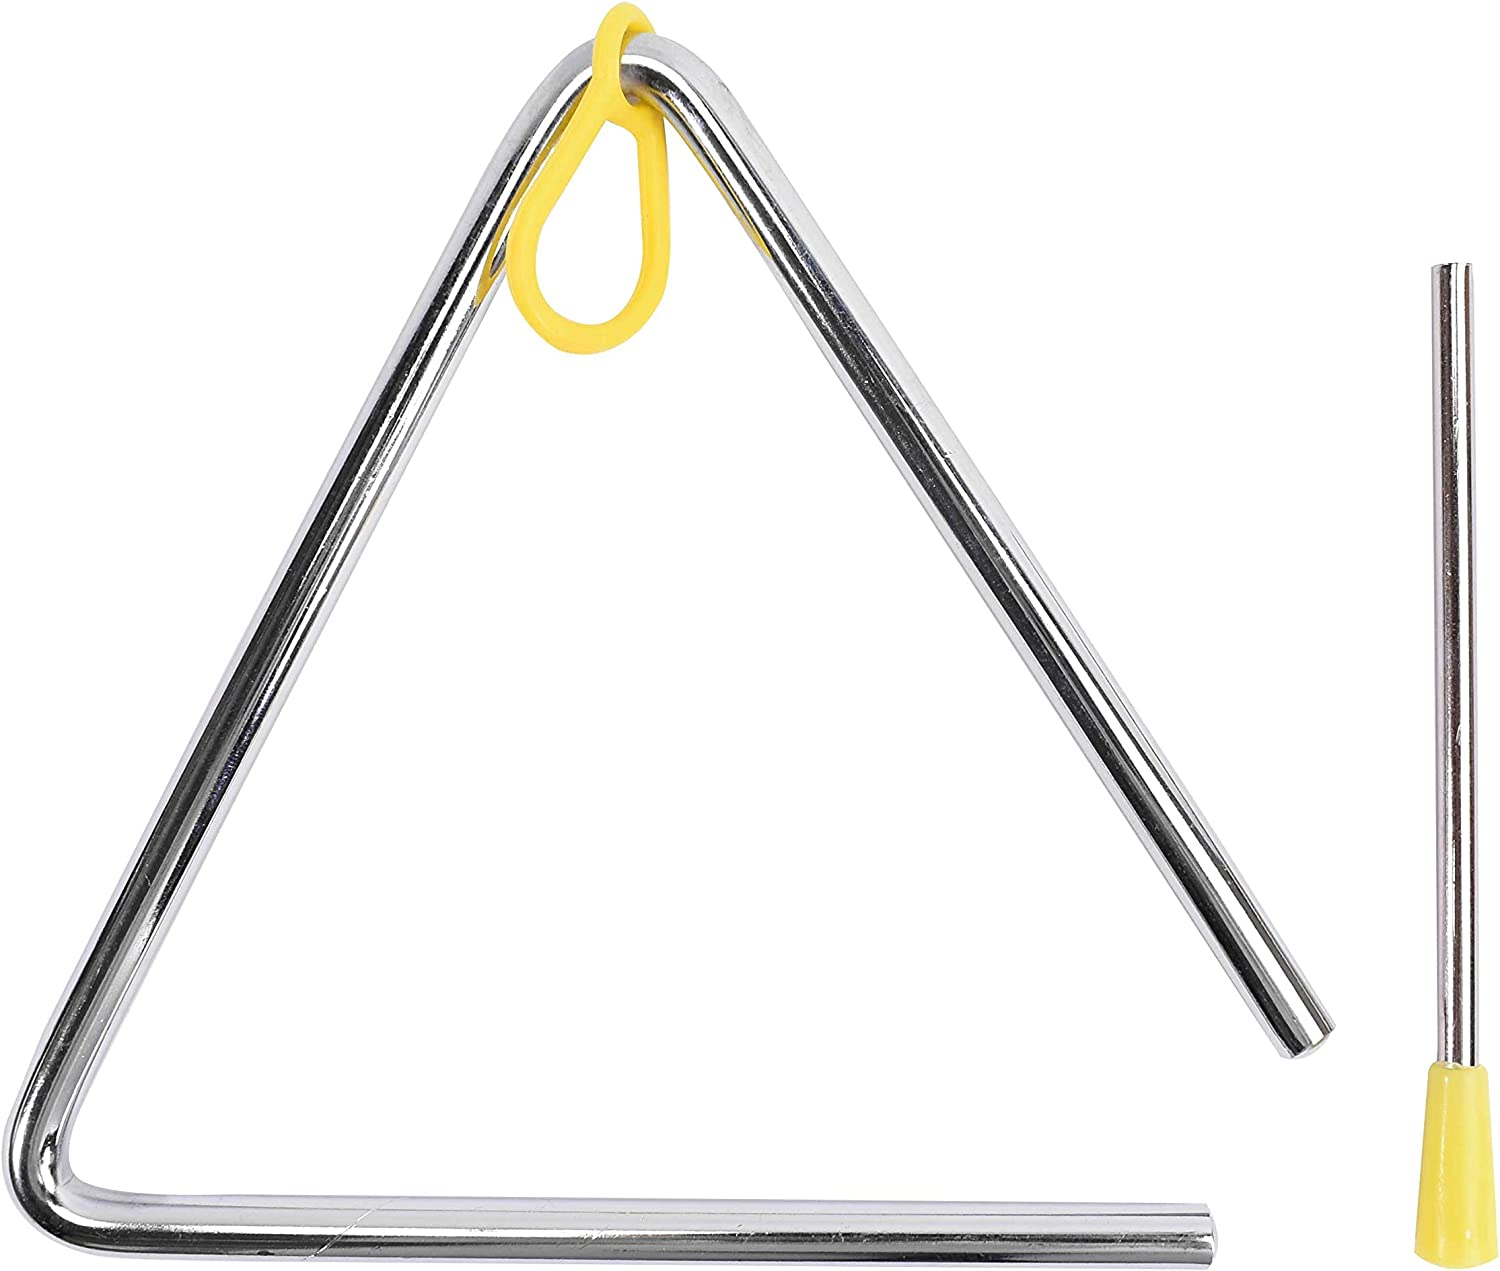 TickiT 85089 Metal Triangle 10cm Childrens Musical Instrument